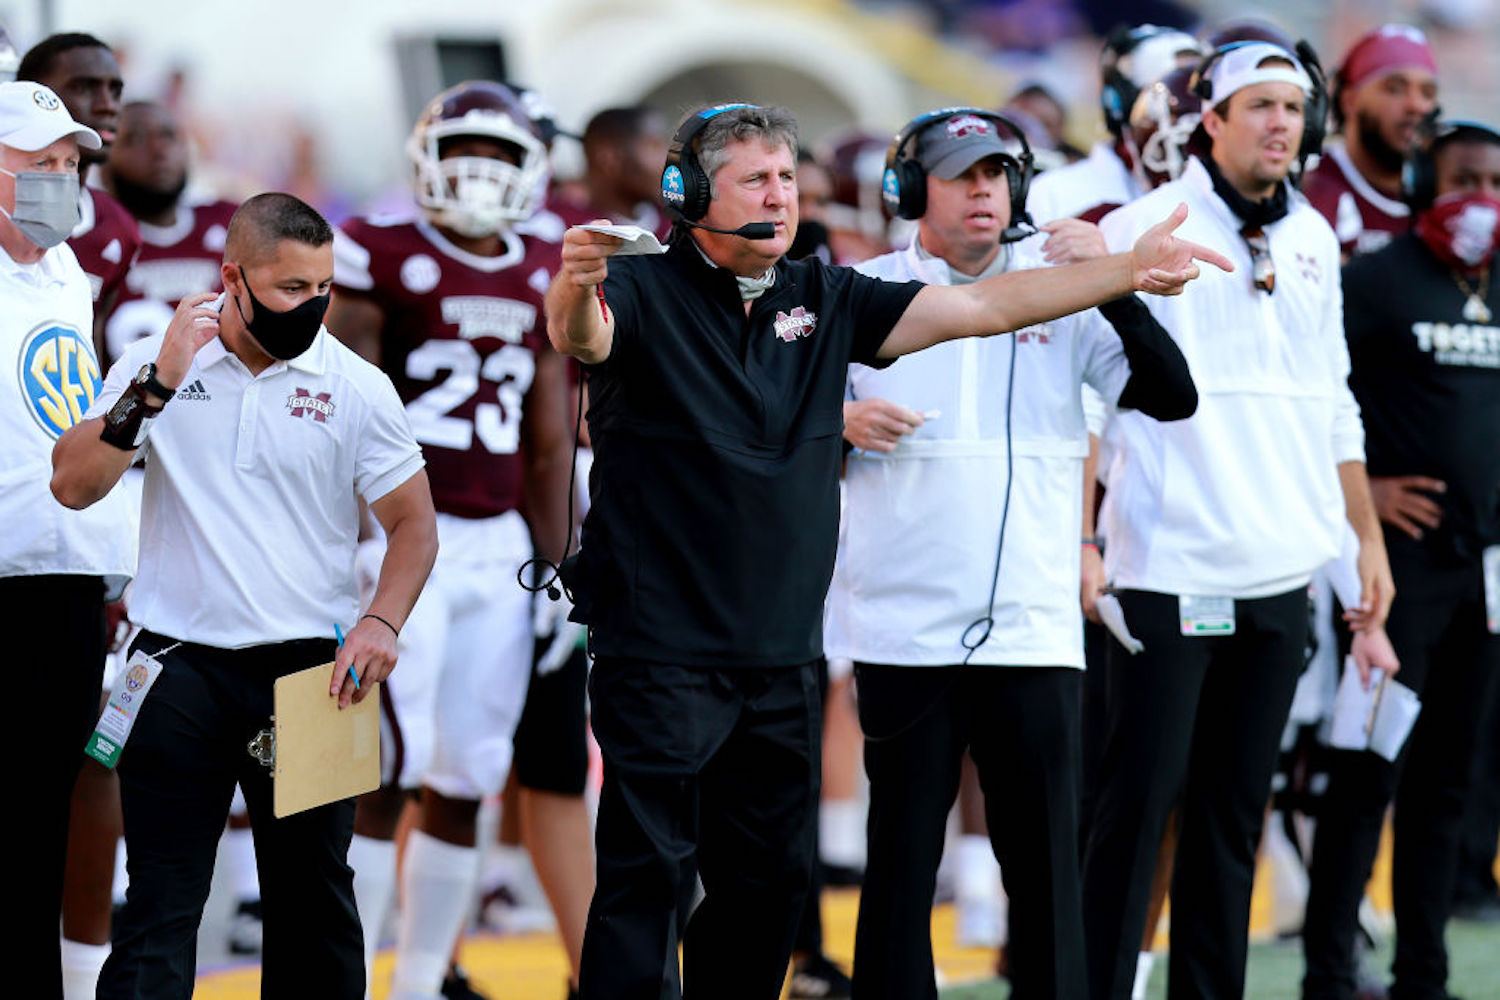 Mike Leach called for a 'purge' of the program a few weeks ago, and Mississippi State is now losing players left and right.